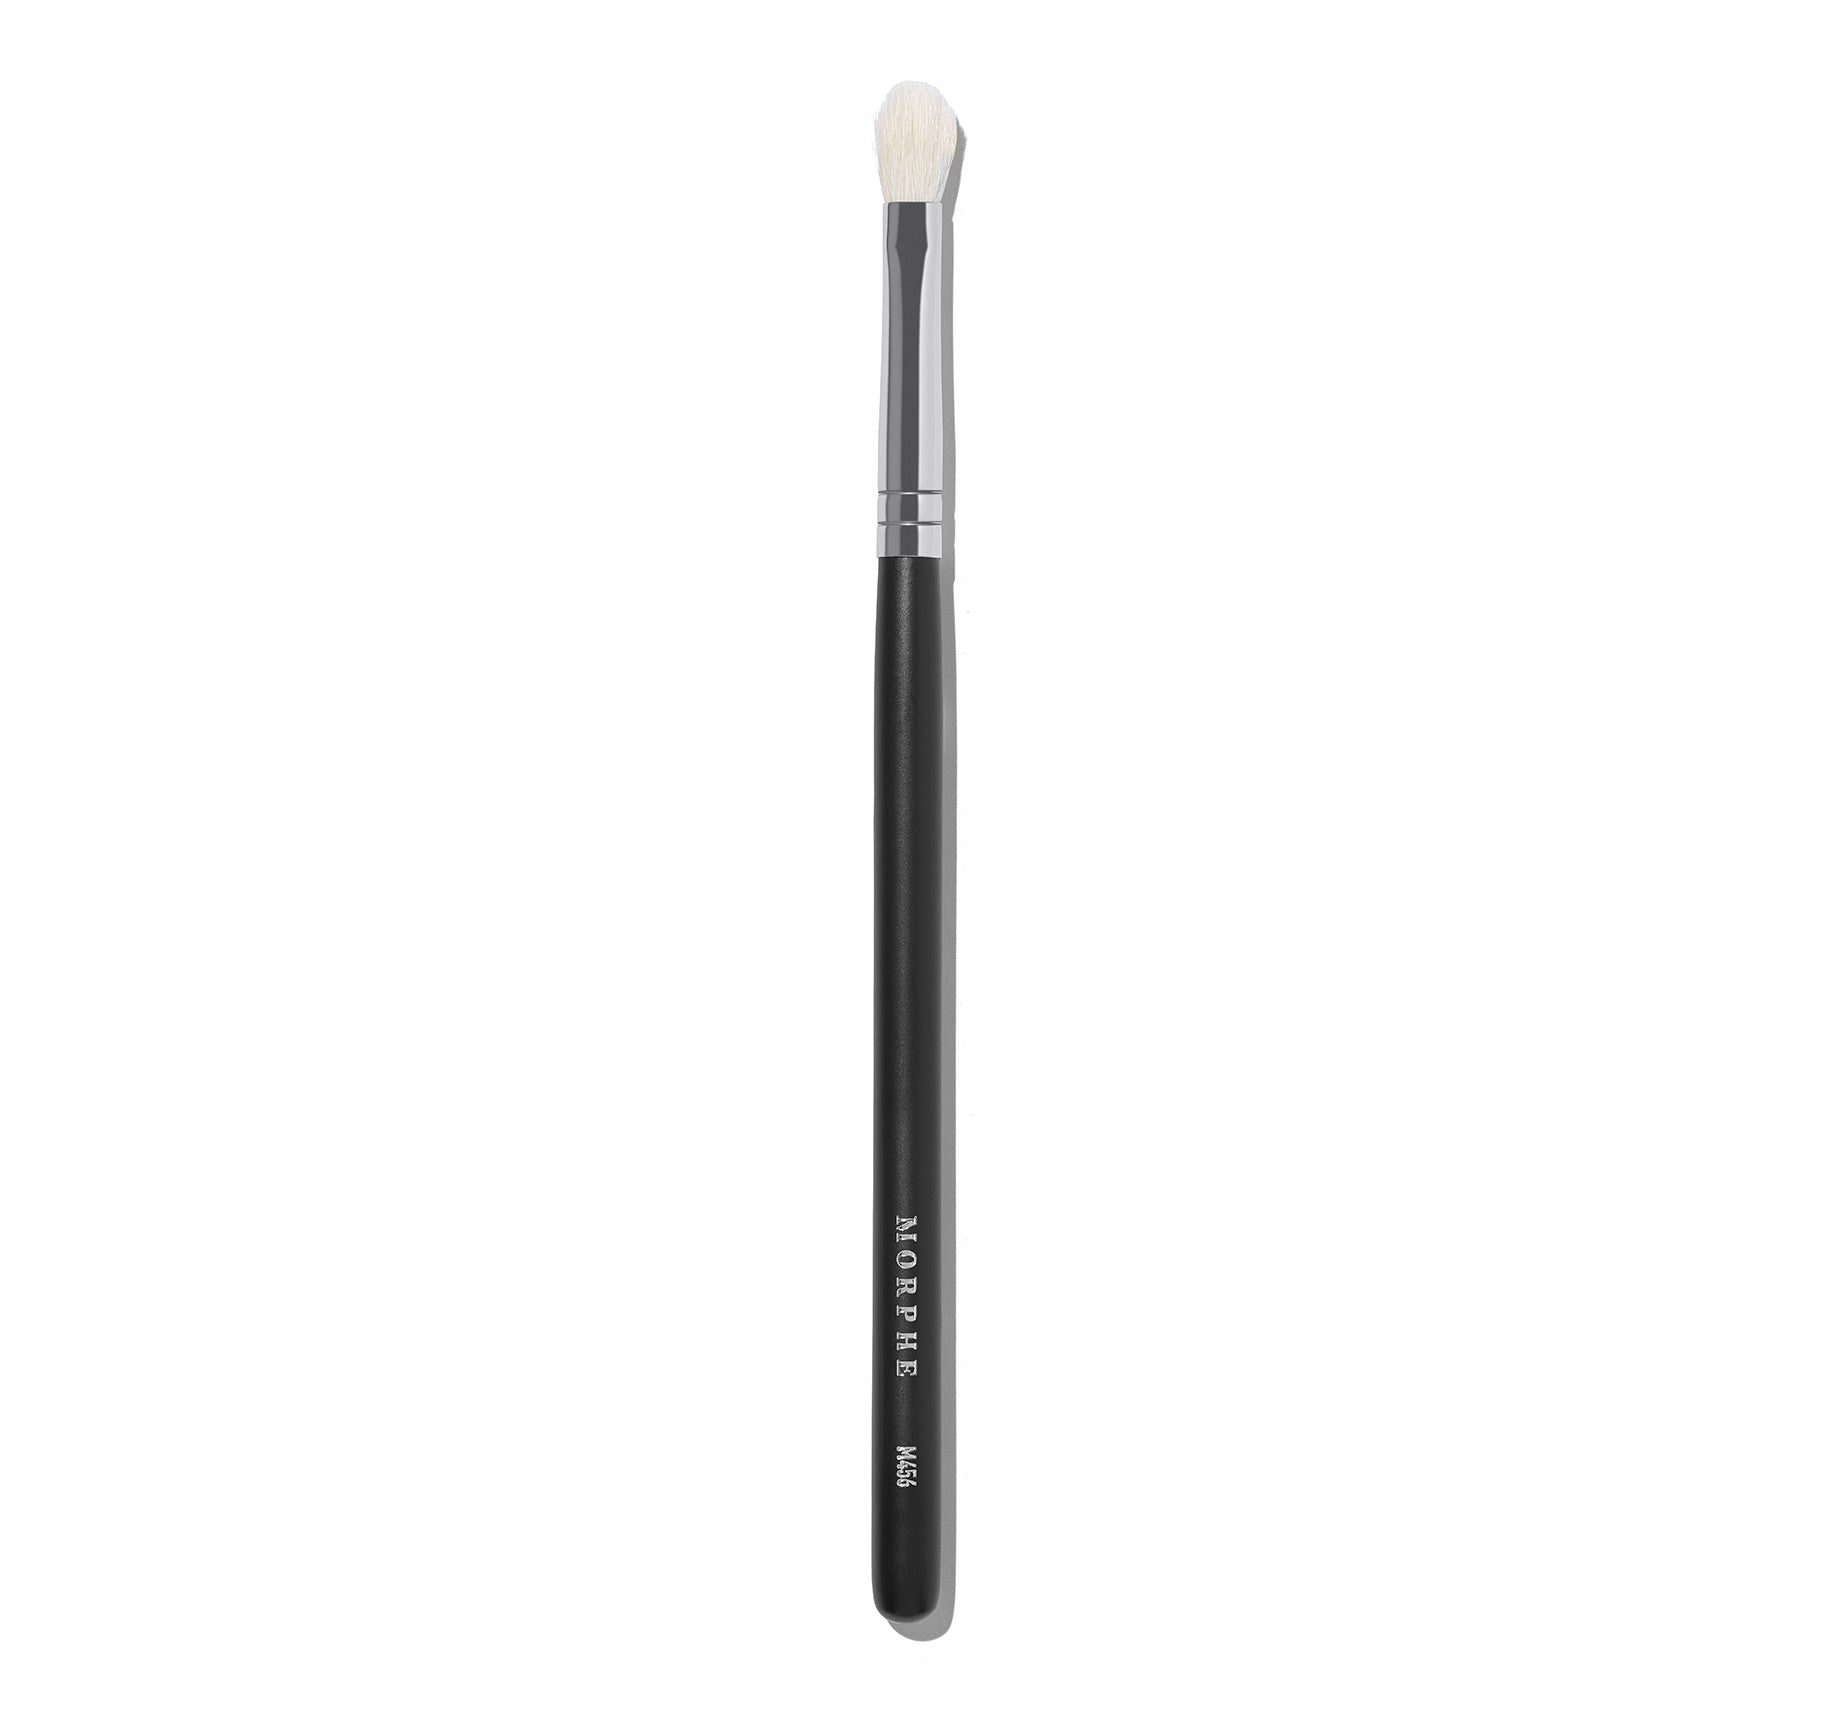 M456 - MINI FIRM BLENDING BRUSH, view larger image